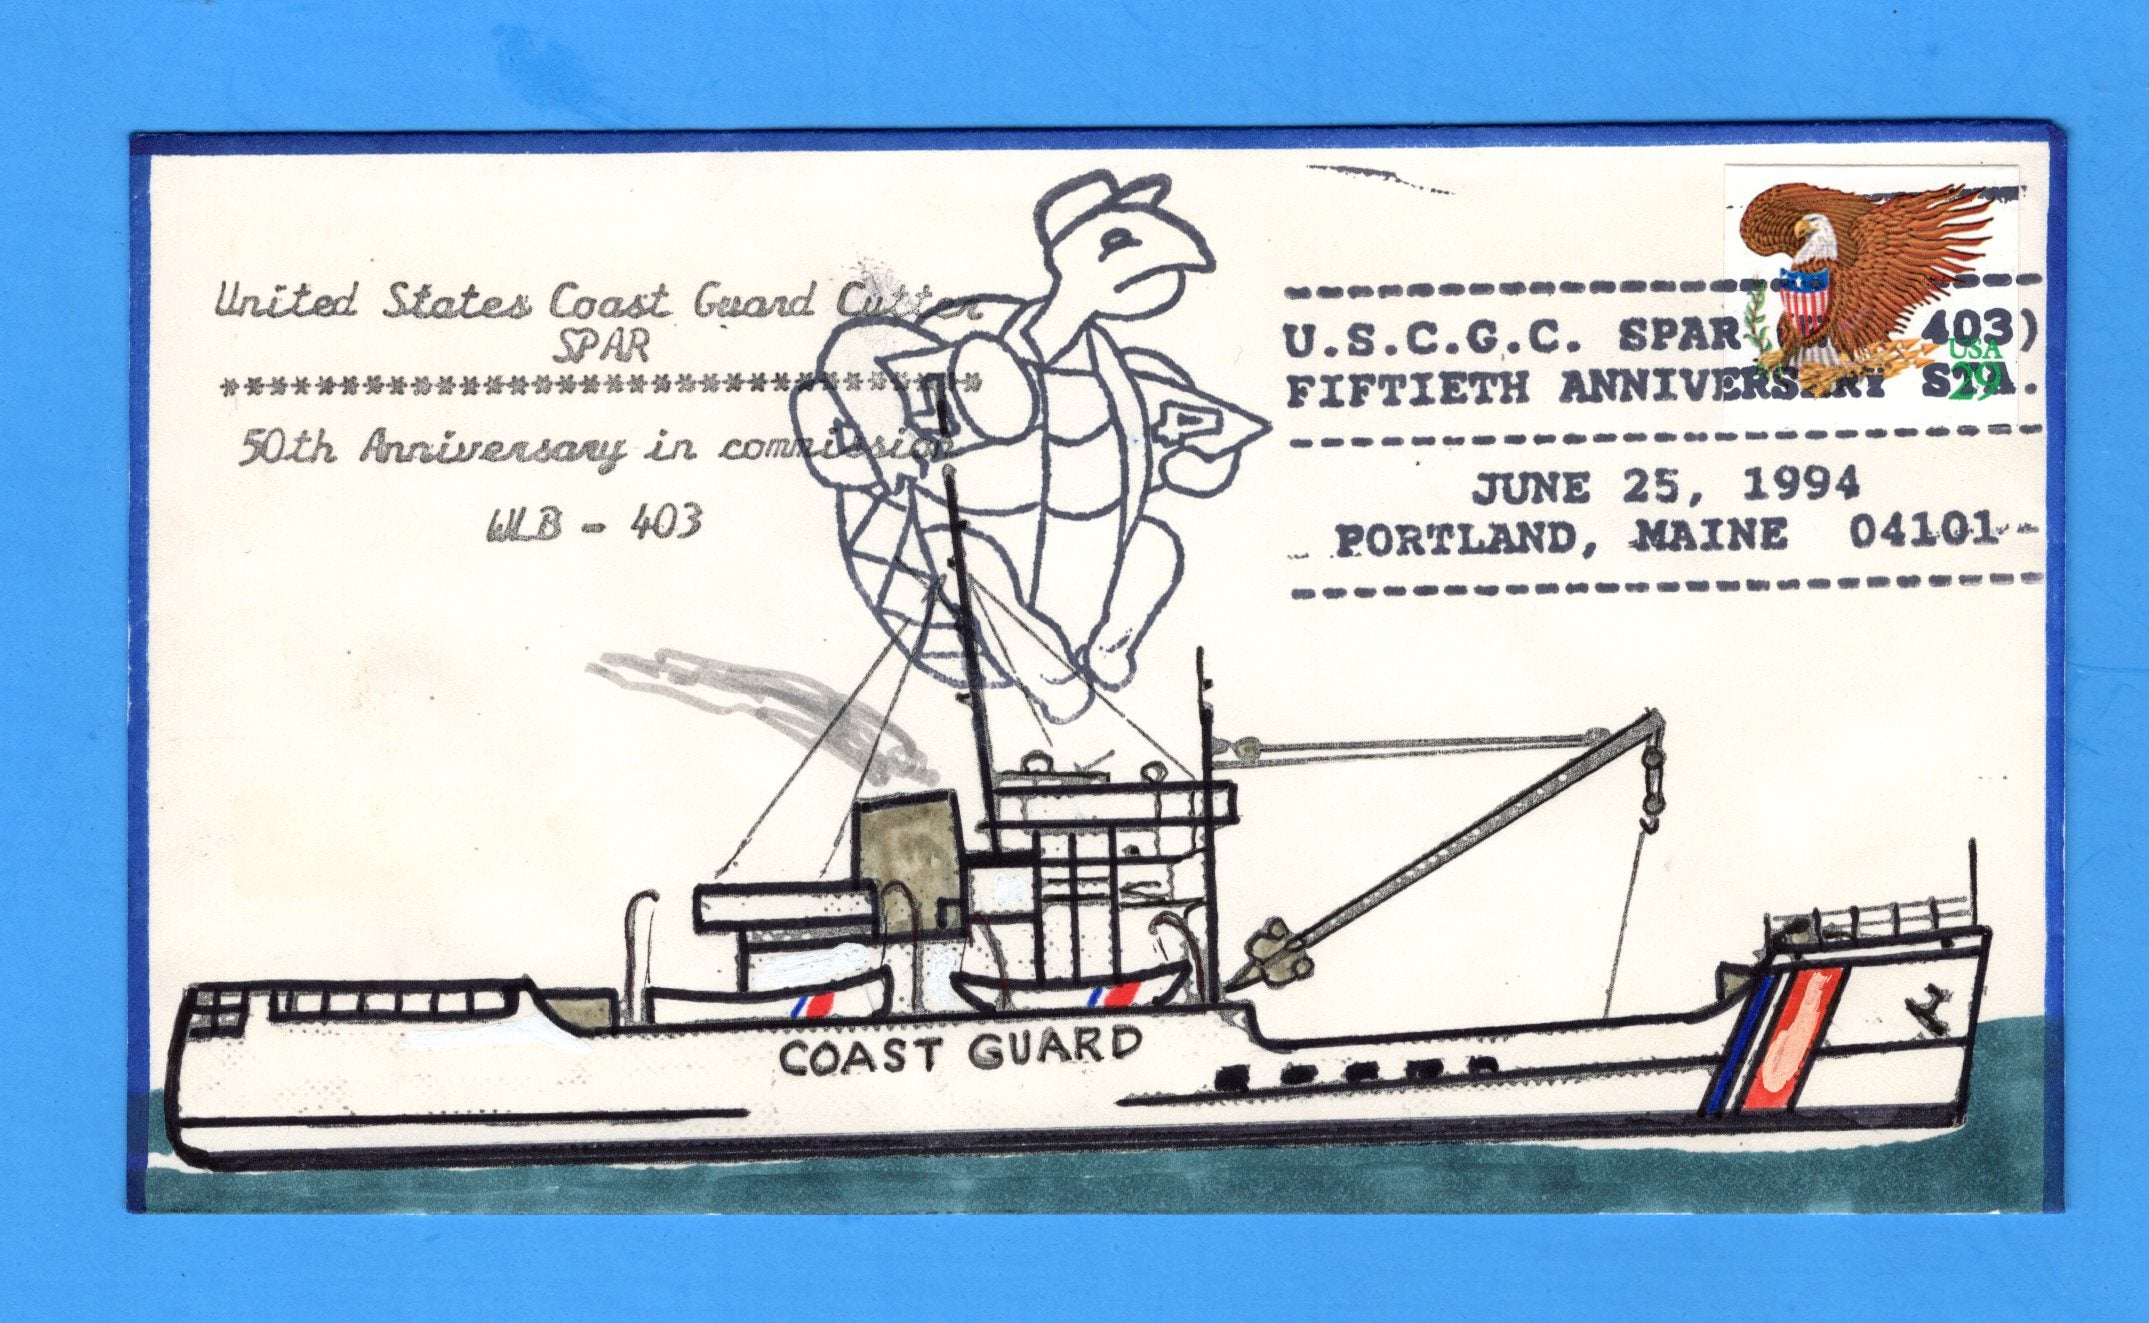 USCGC Spar WLB-403 50th Anniversary of Commission June 25, 1994 - Hand Drawn and Colored Cachet by Bill Everett